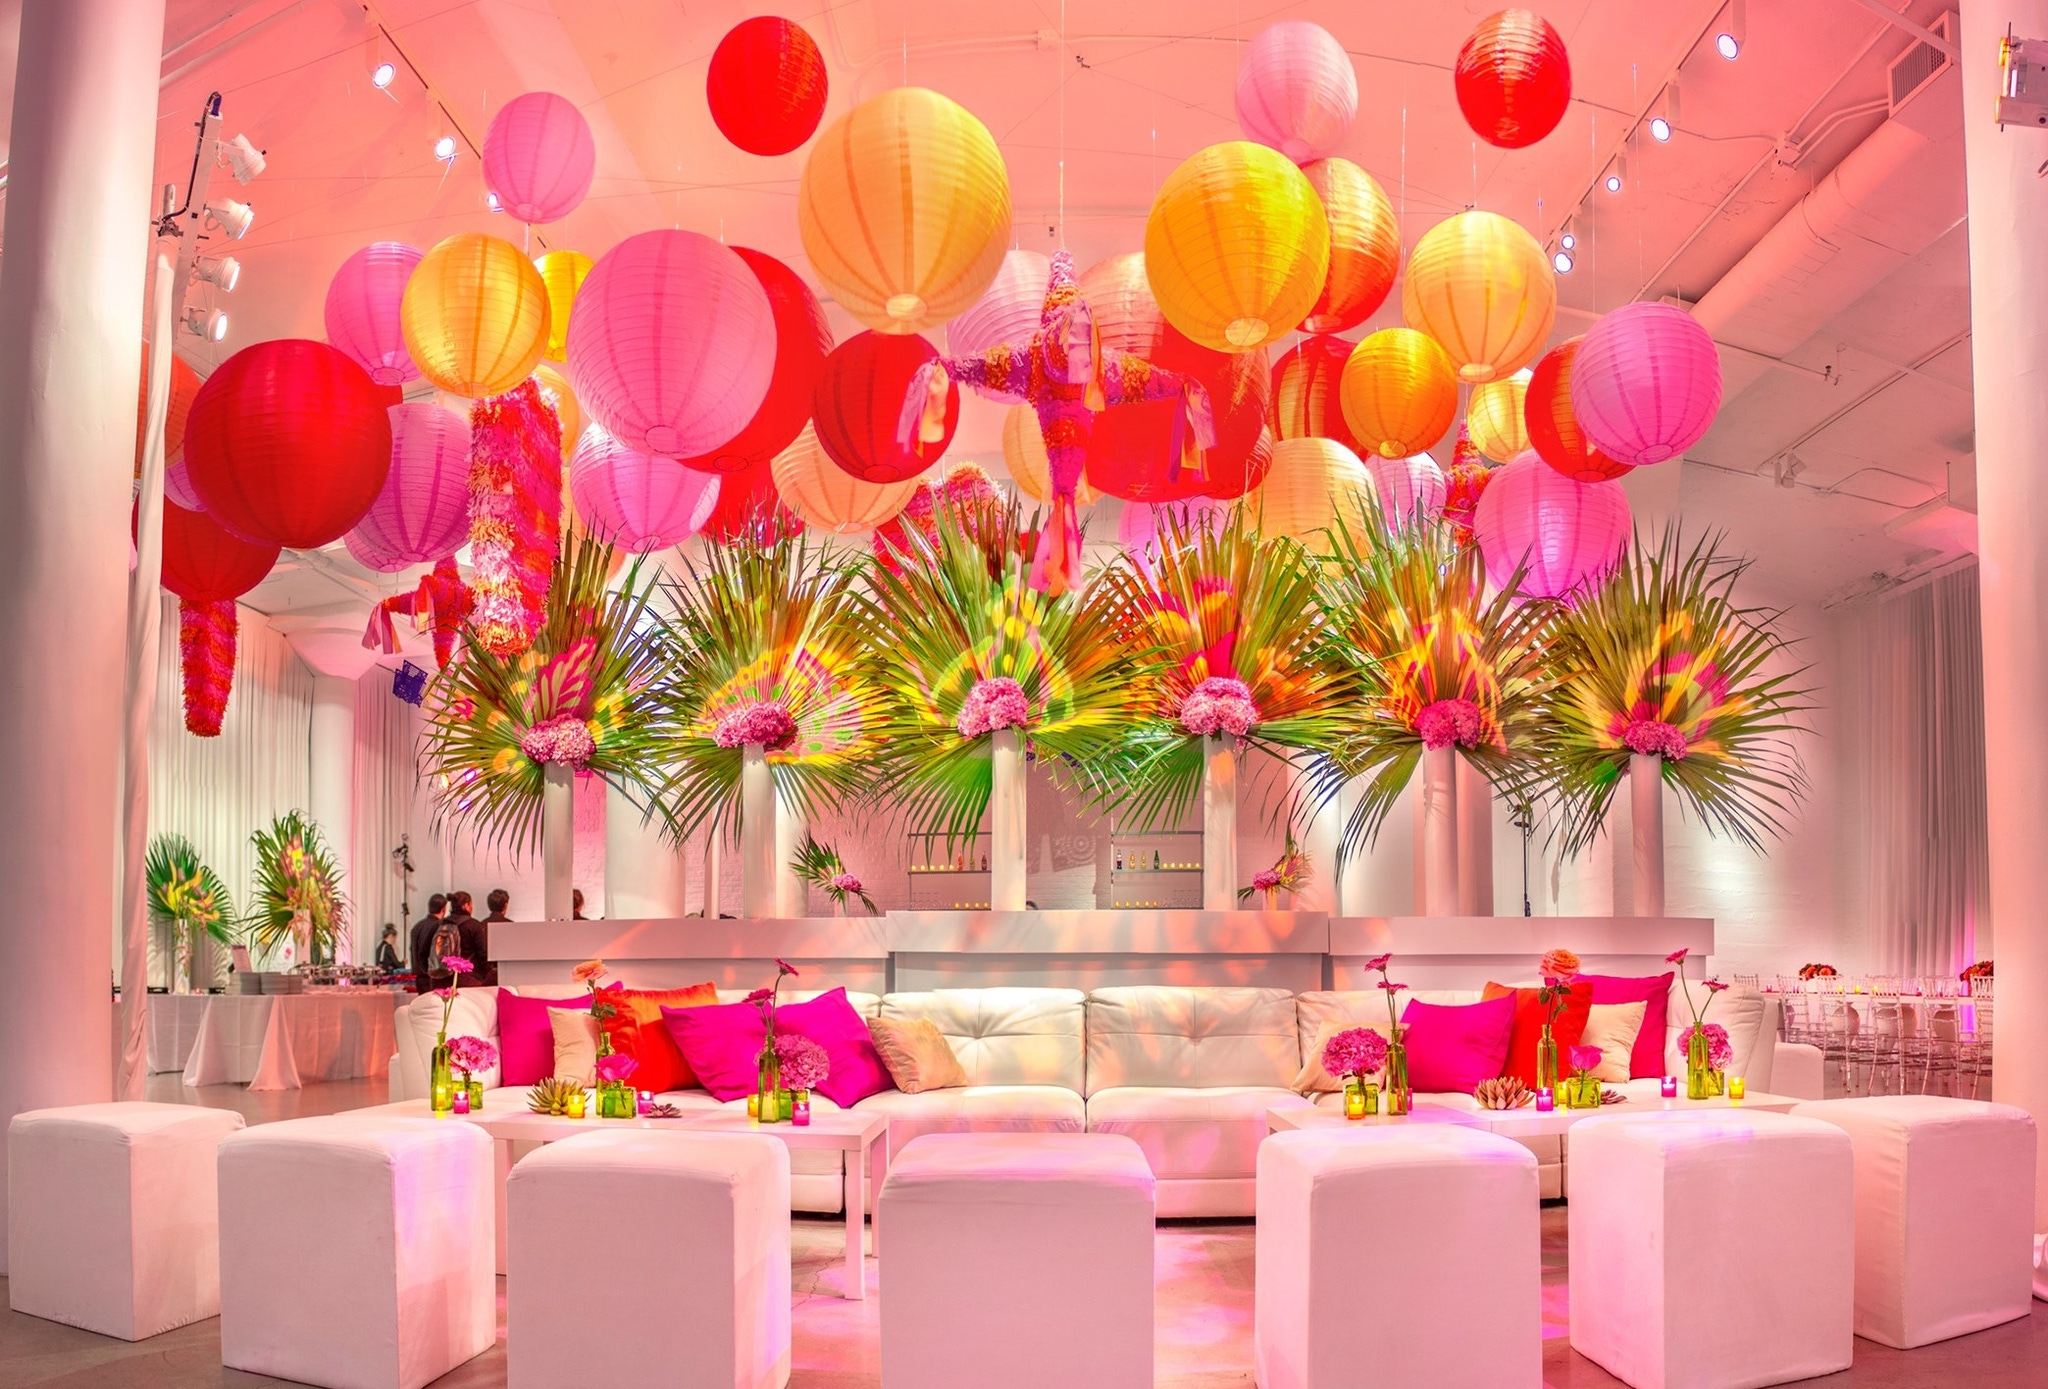 Best ceiling decor ideas - WEDDING